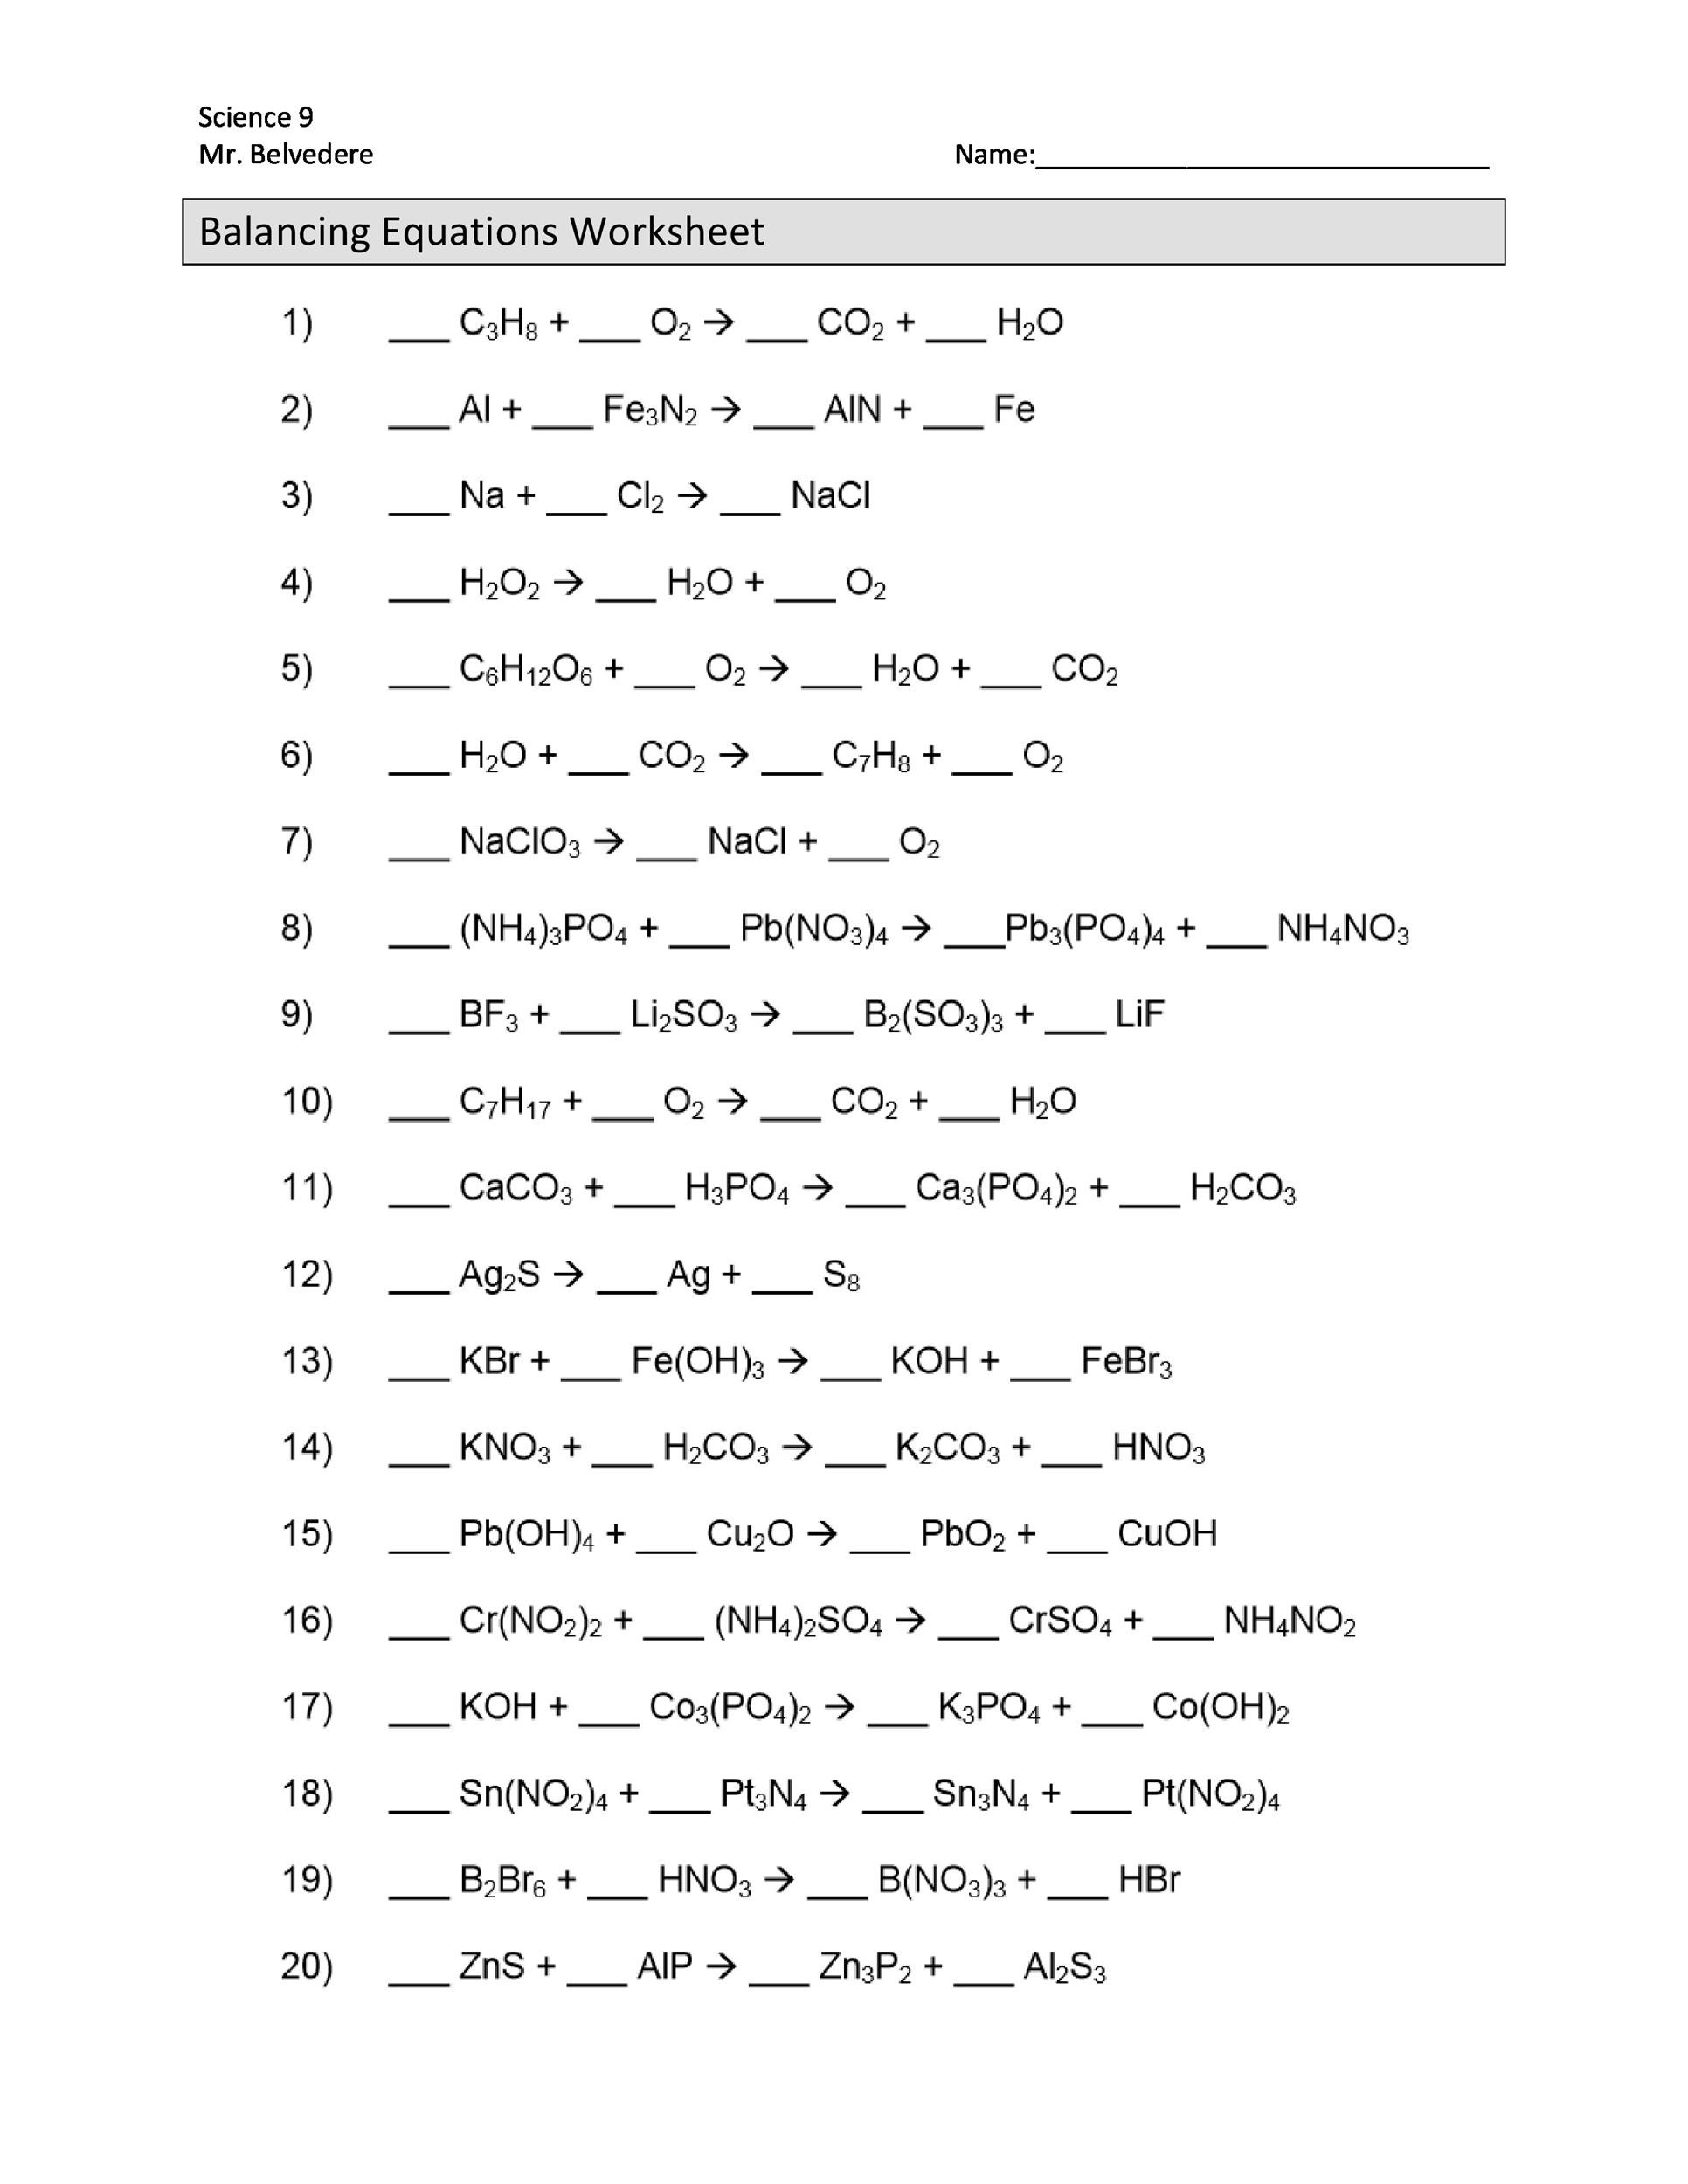 Free 8th Grade Science Worksheets Balancing Chemical Equations Worksheets with Answers 8th